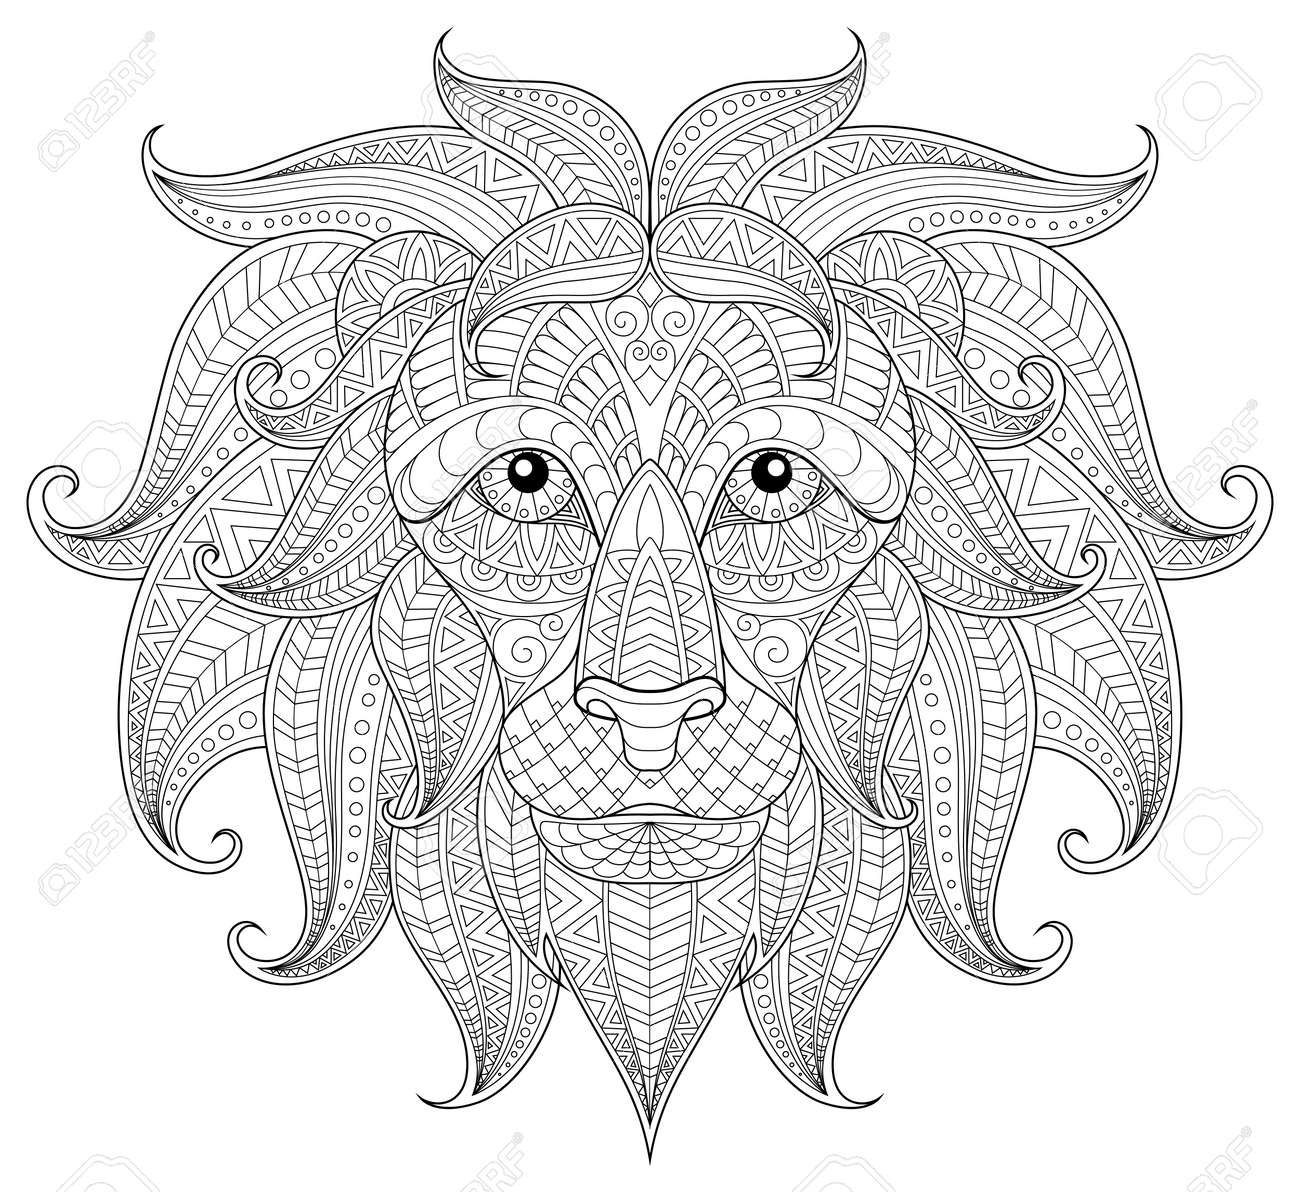 Coloring book for adults lion - Anti Stress Coloring Book Lion Lion Head Adult Antistress Coloring Page Black And White Doodle